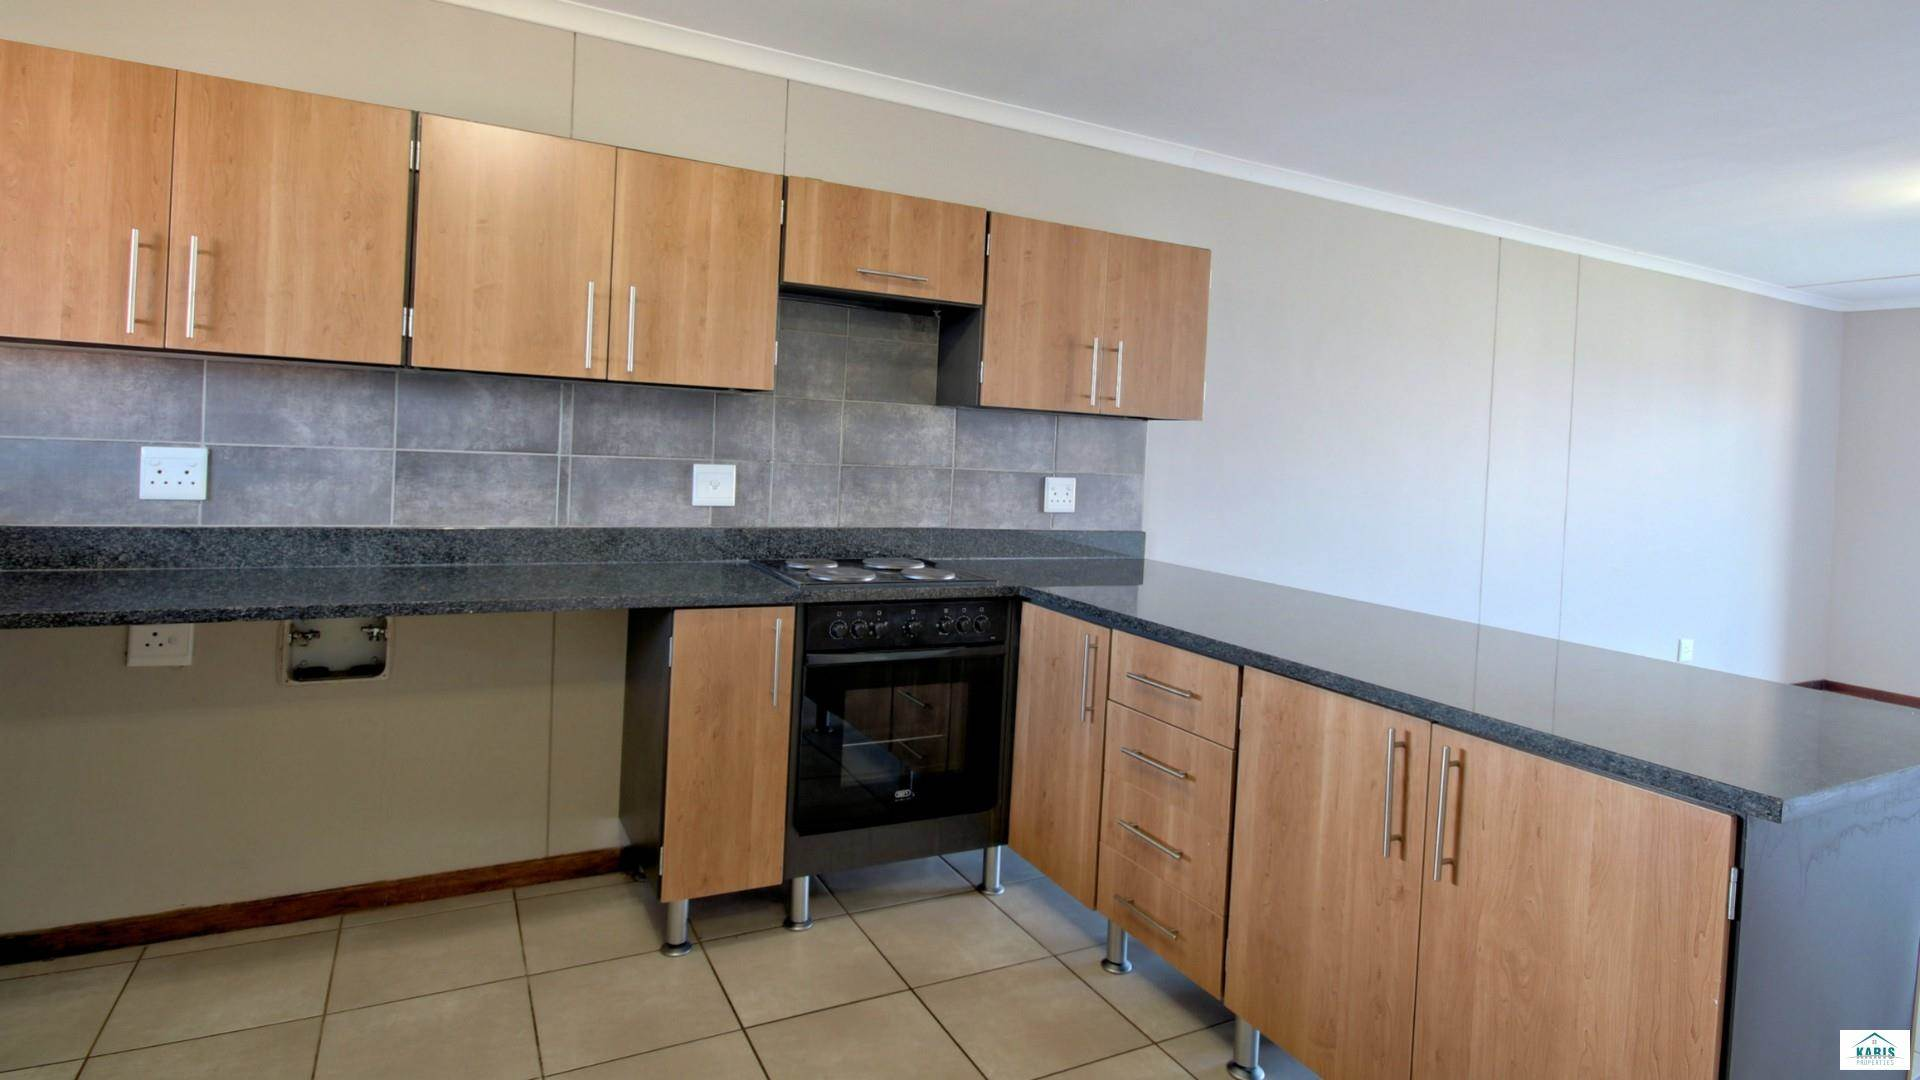 Apartment To Rent In Highveld Centurion Gauteng For R 9 500 Month